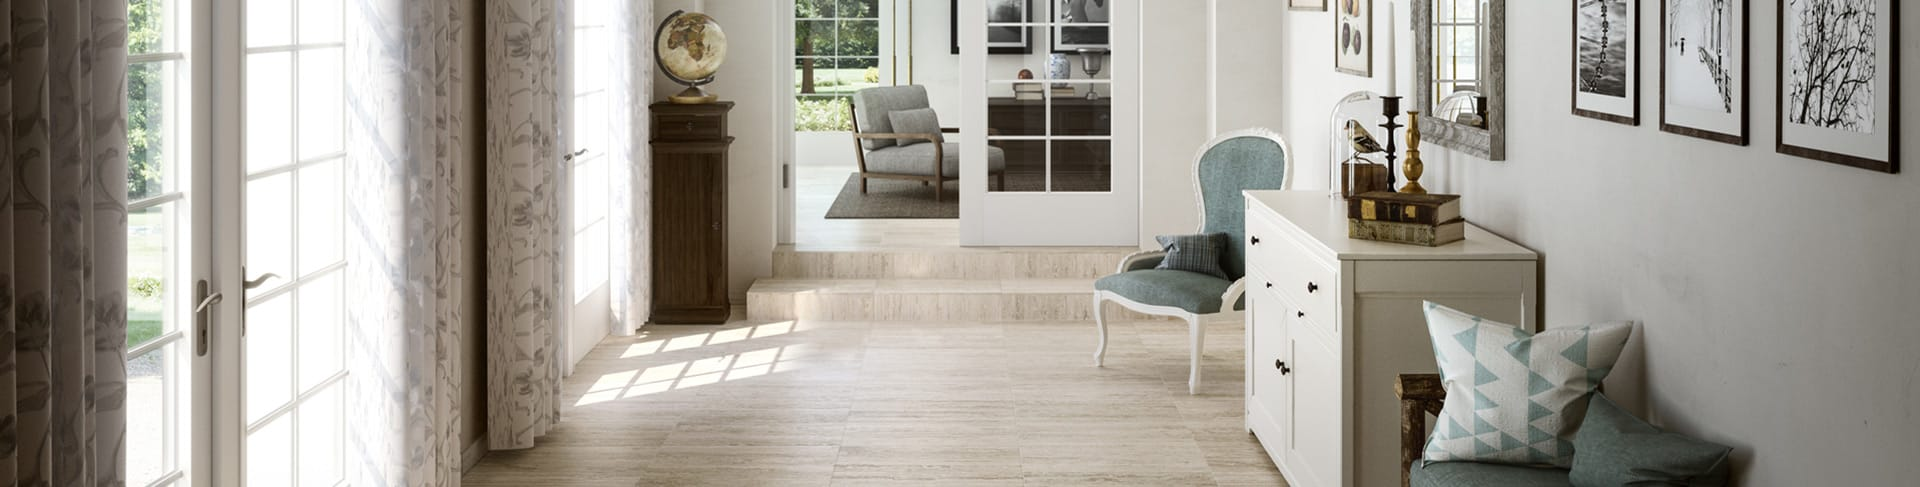 Beautiful porcelain tile with a travertine look from the Atlas Concorde USA Path Collection